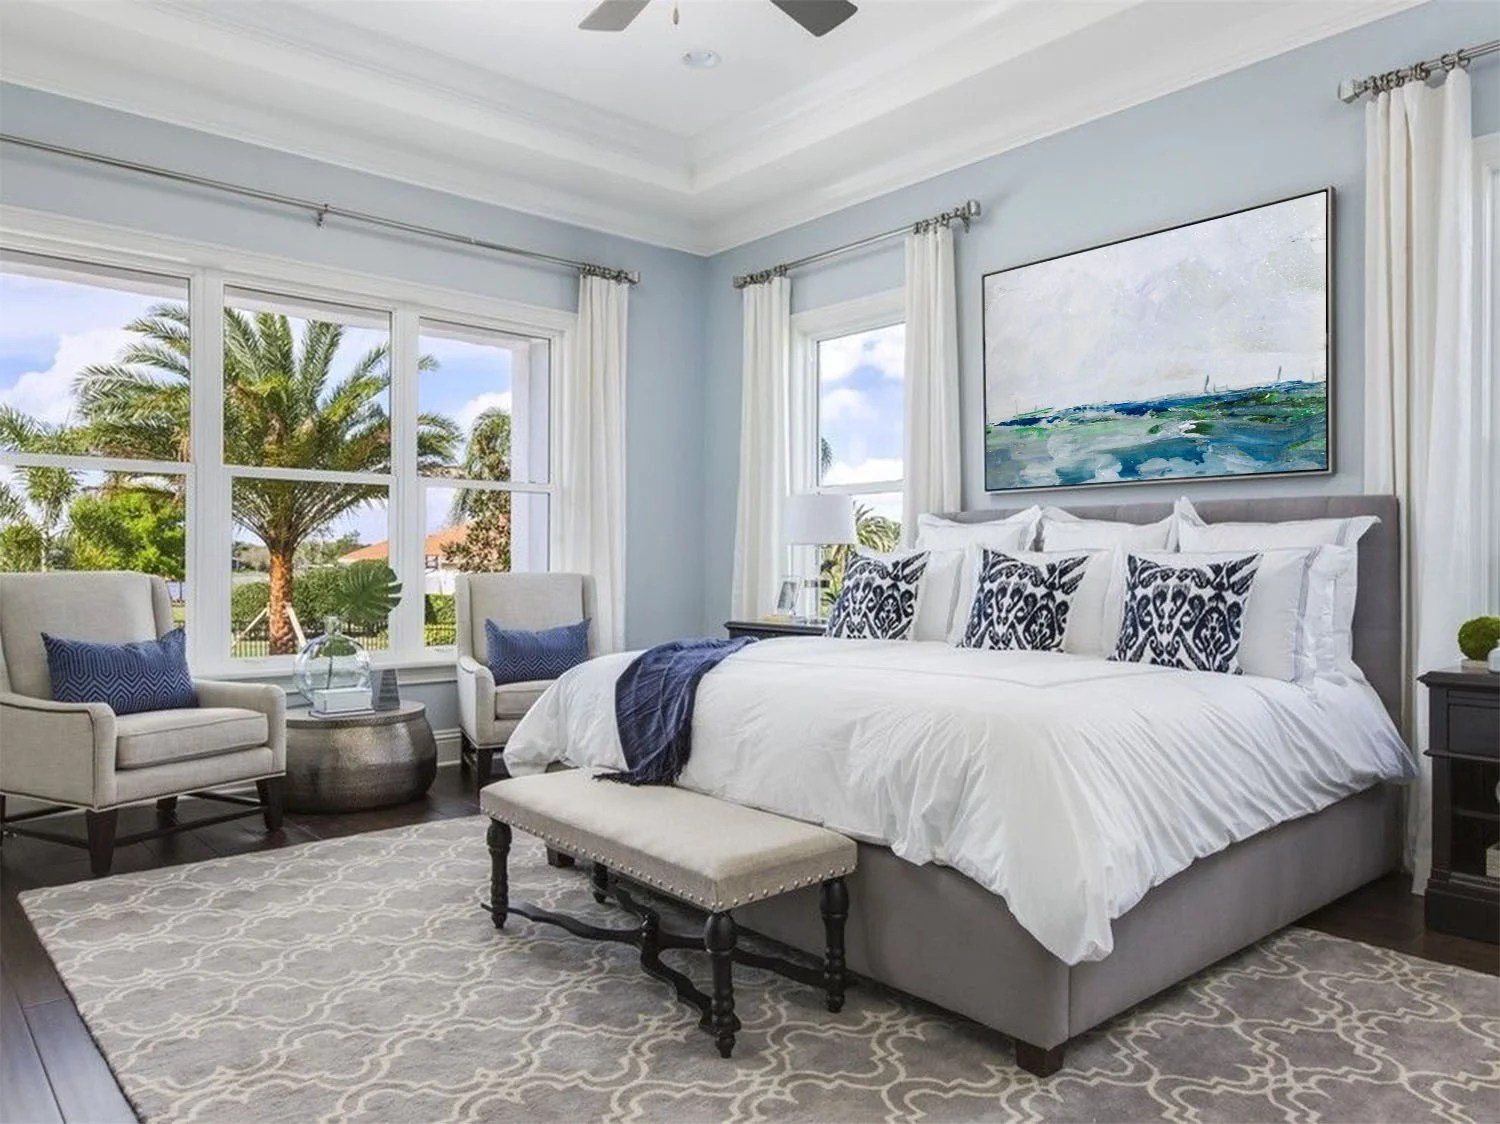 Interiors | Blue Bedroom, Interiors, interior designer summerville sc, One Coast Design, Michelle Woolley Sauter